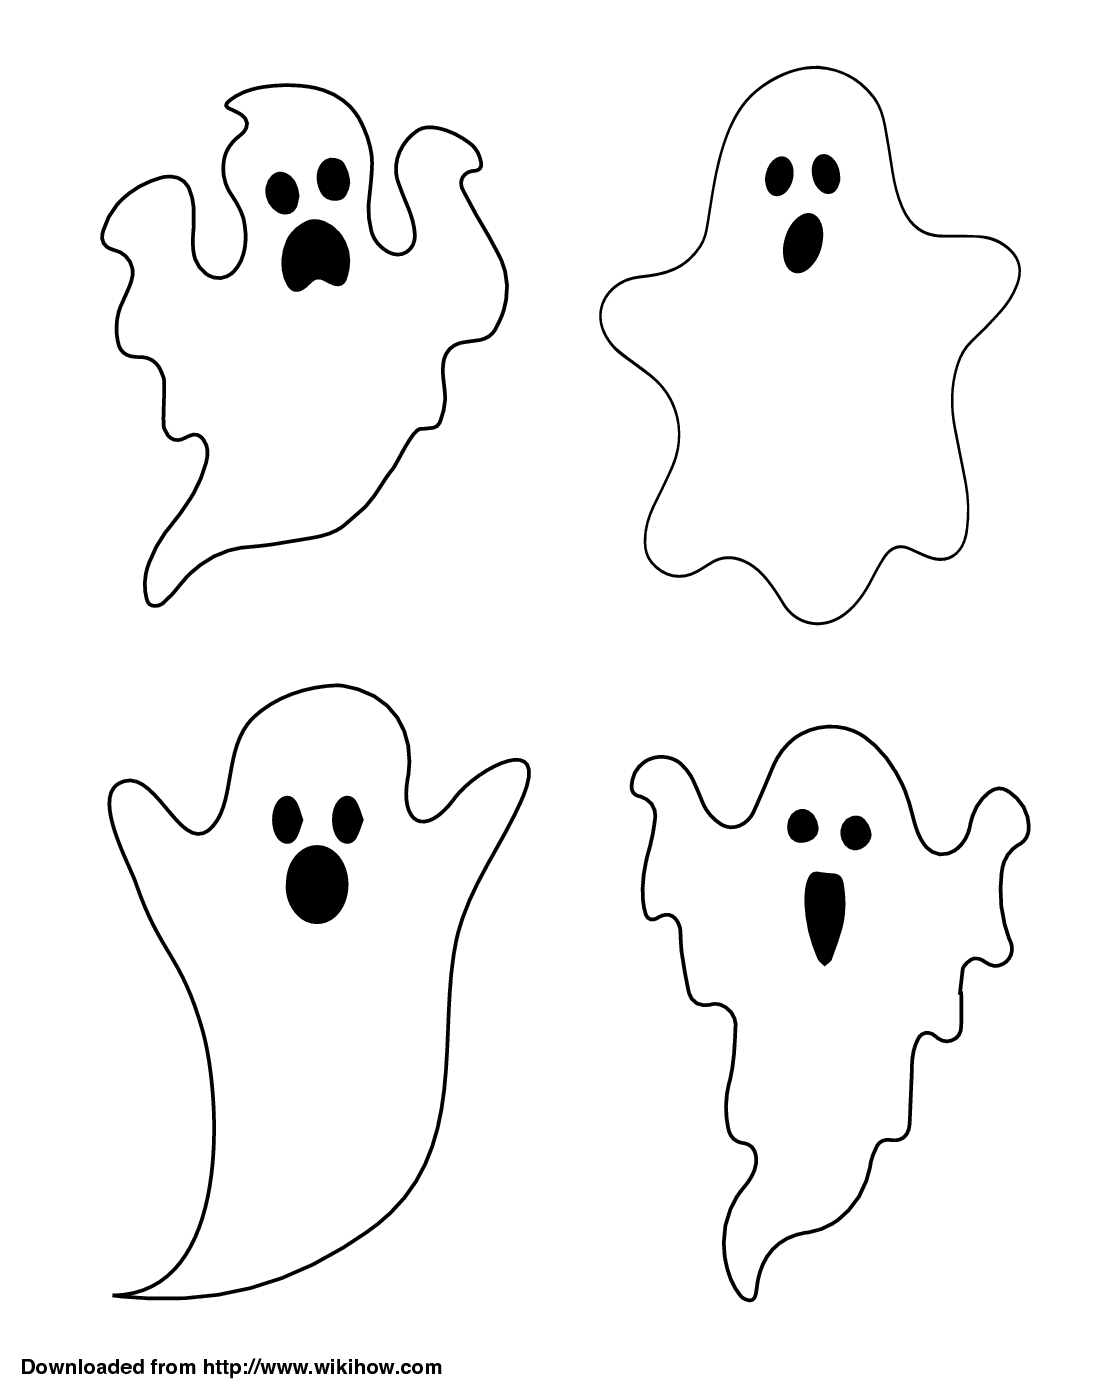 3 Ways To Draw A Ghost Wikihow Bricolage Halloween Halloween Templates Halloween Drawings